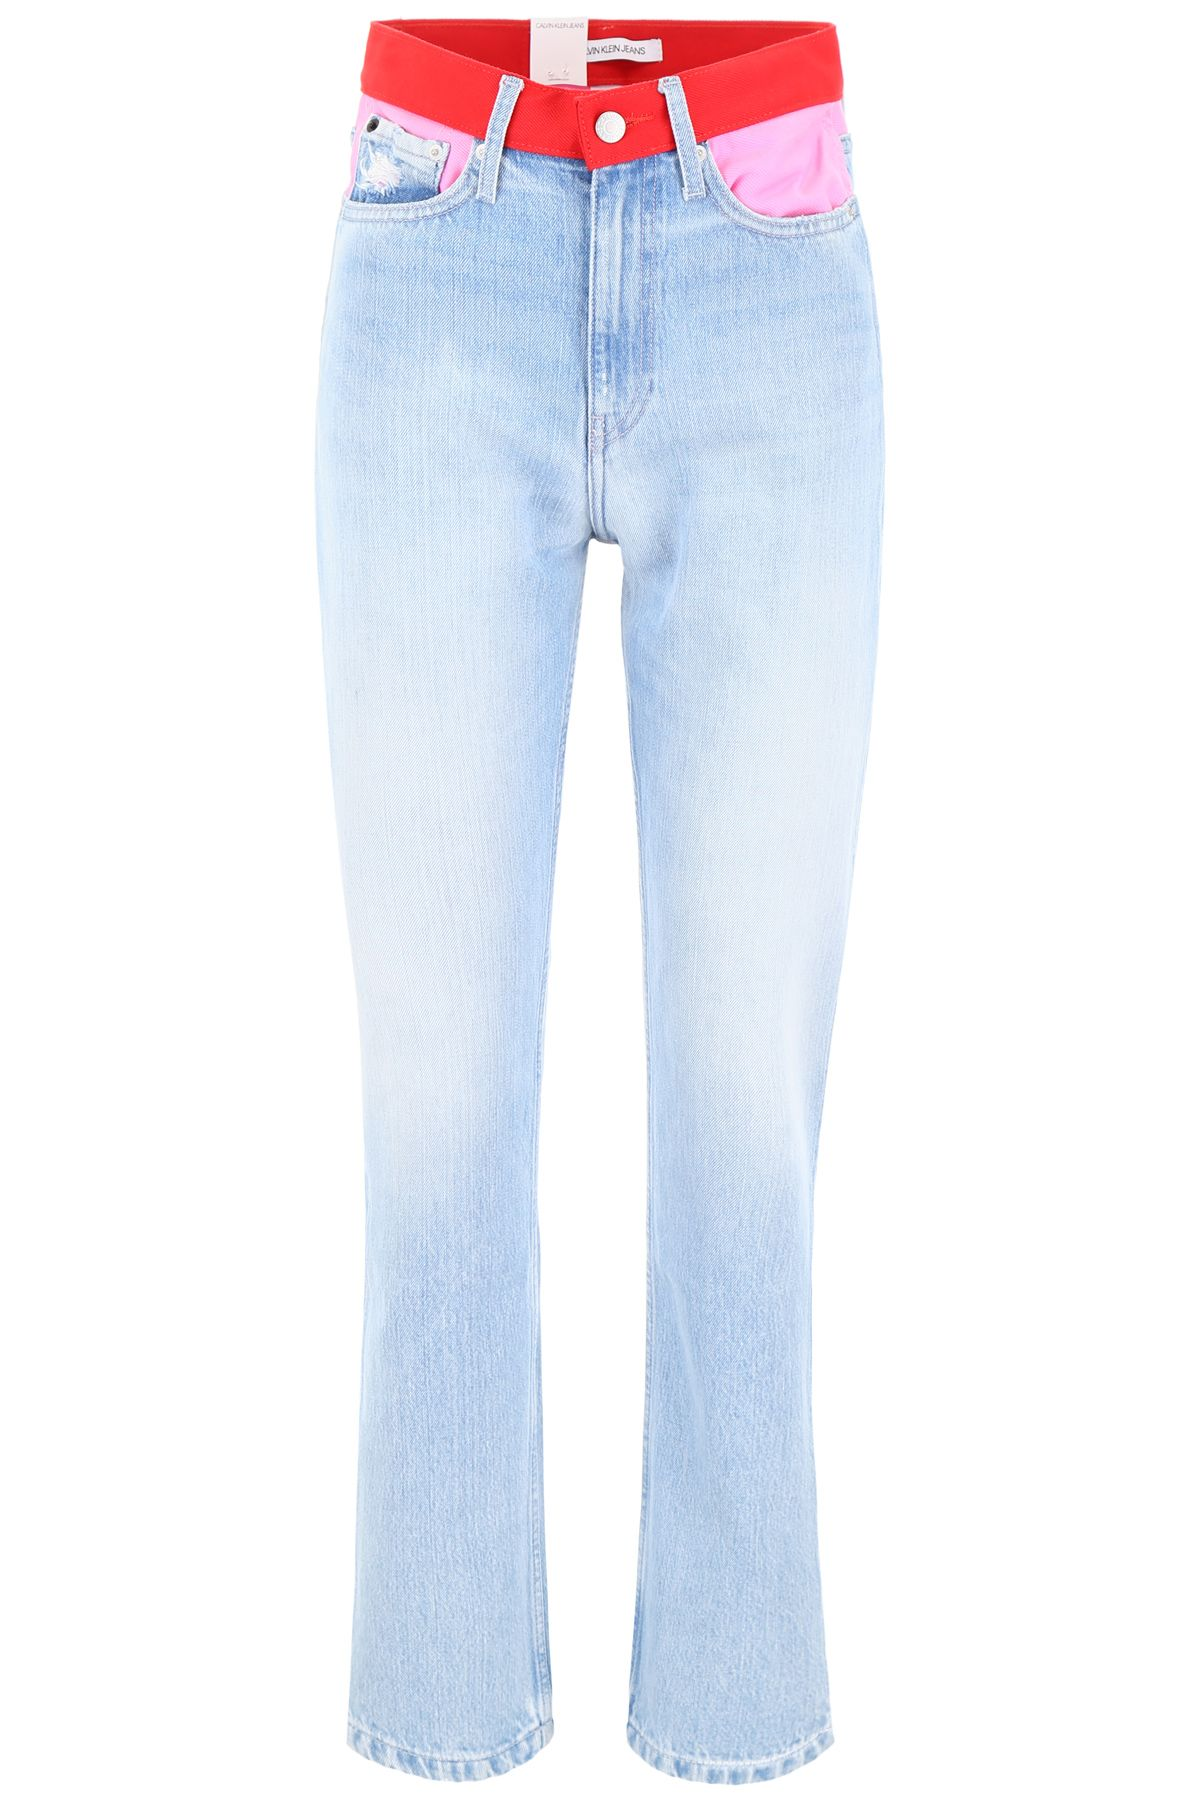 e475746f Calvin Klein Jeans Ckj 030 Jeans - LIGHT BLUE PINK RED (Light blue) ...